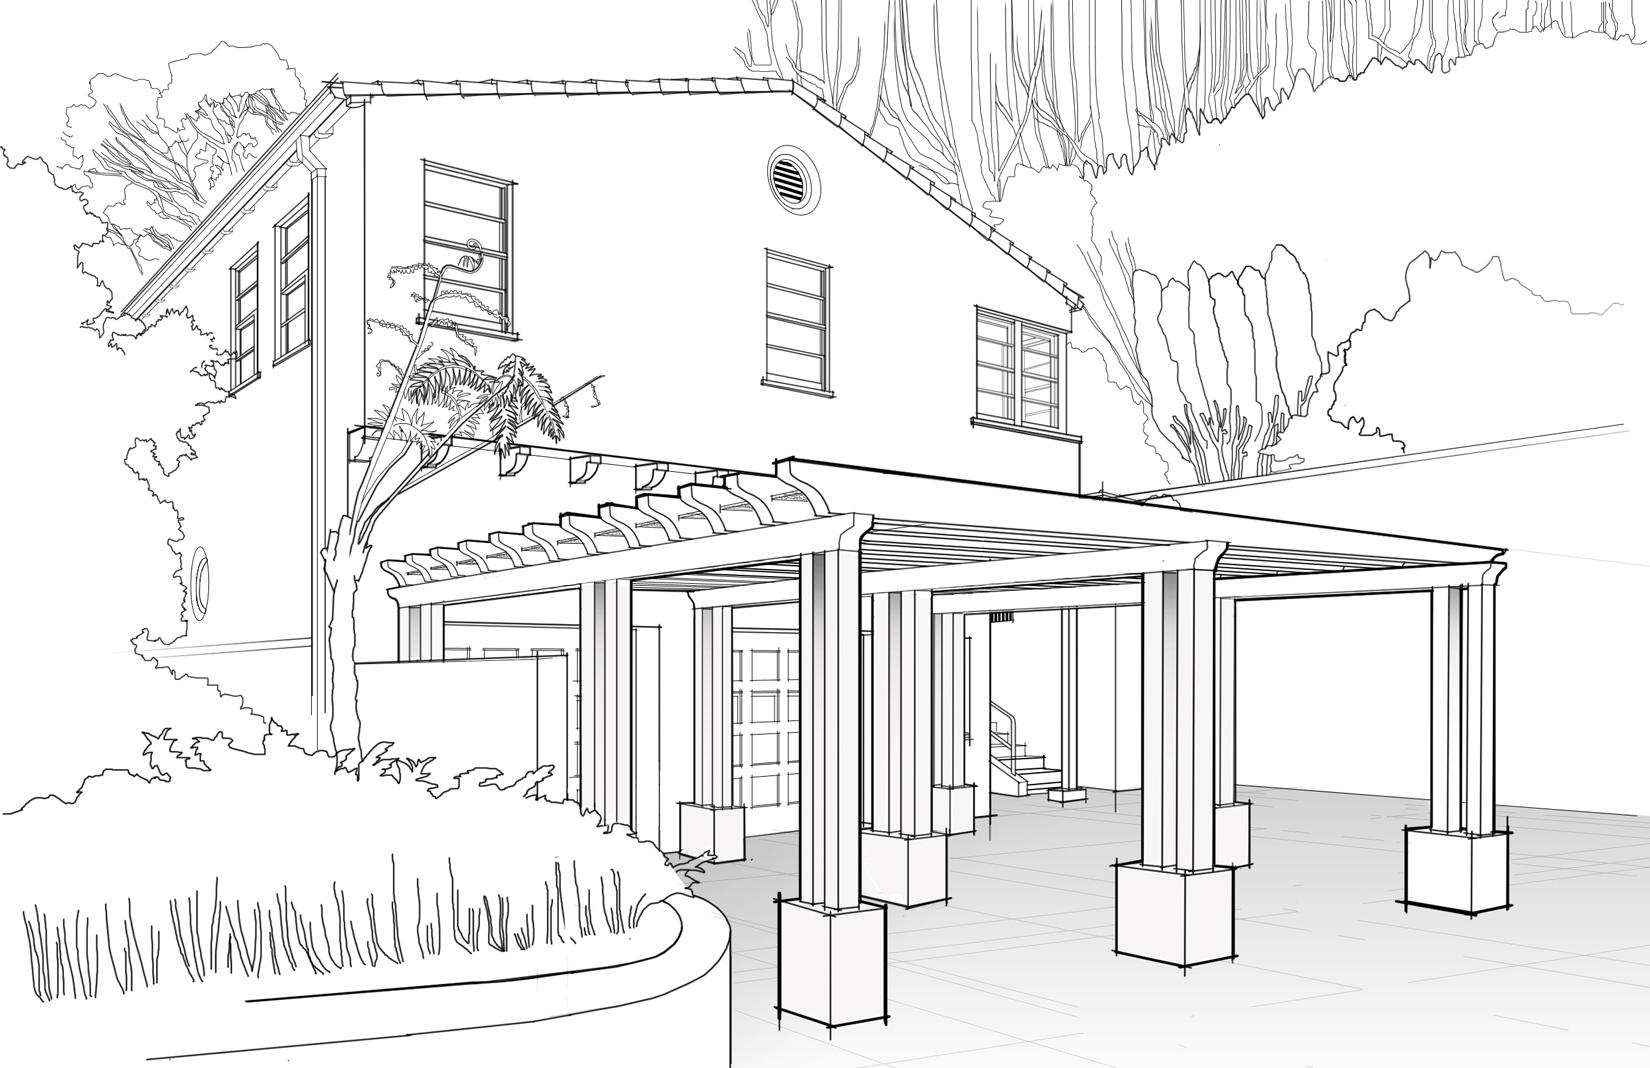 Line Art Images Of Houses : House line drawing images frompo